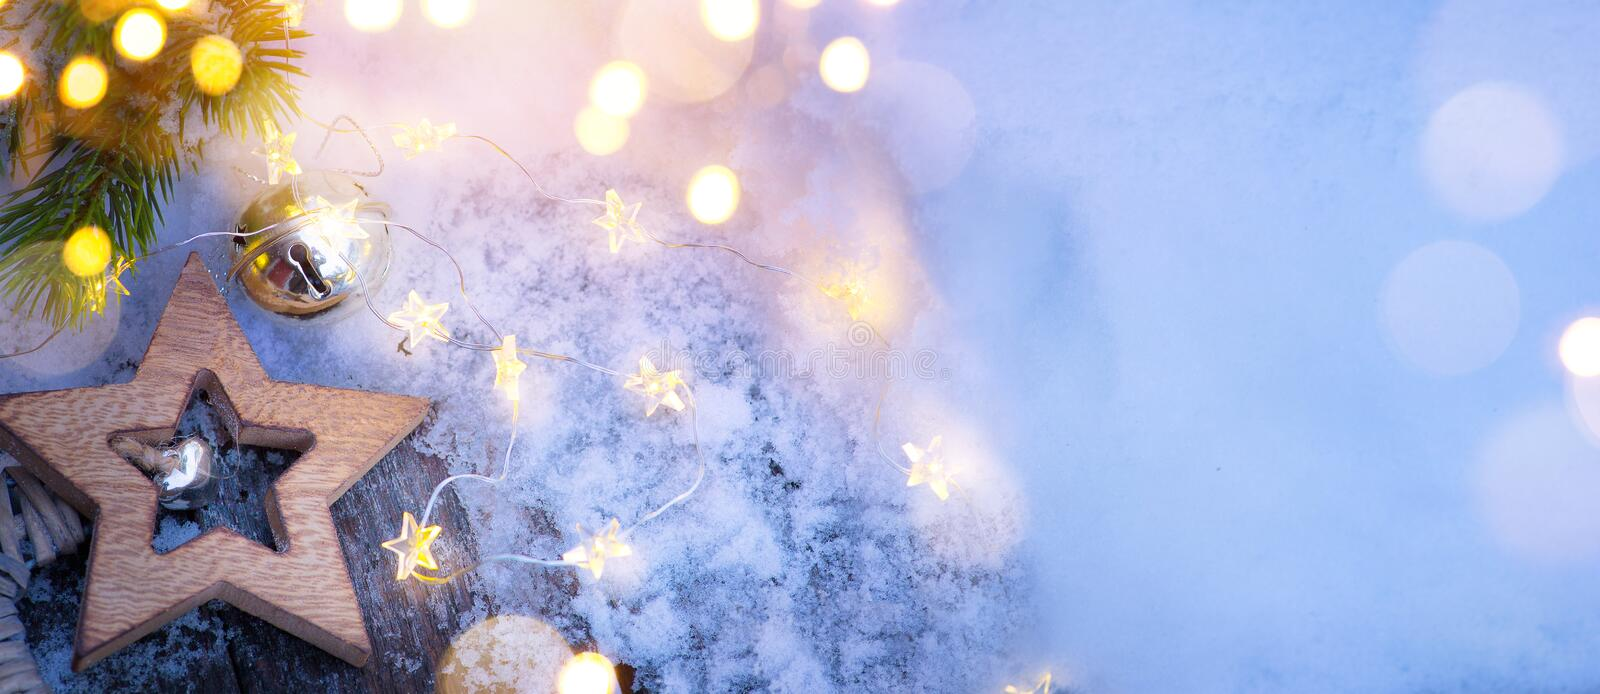 Merry Christmas blue snowy background and fir tree branches with holidays lights royalty free stock photography